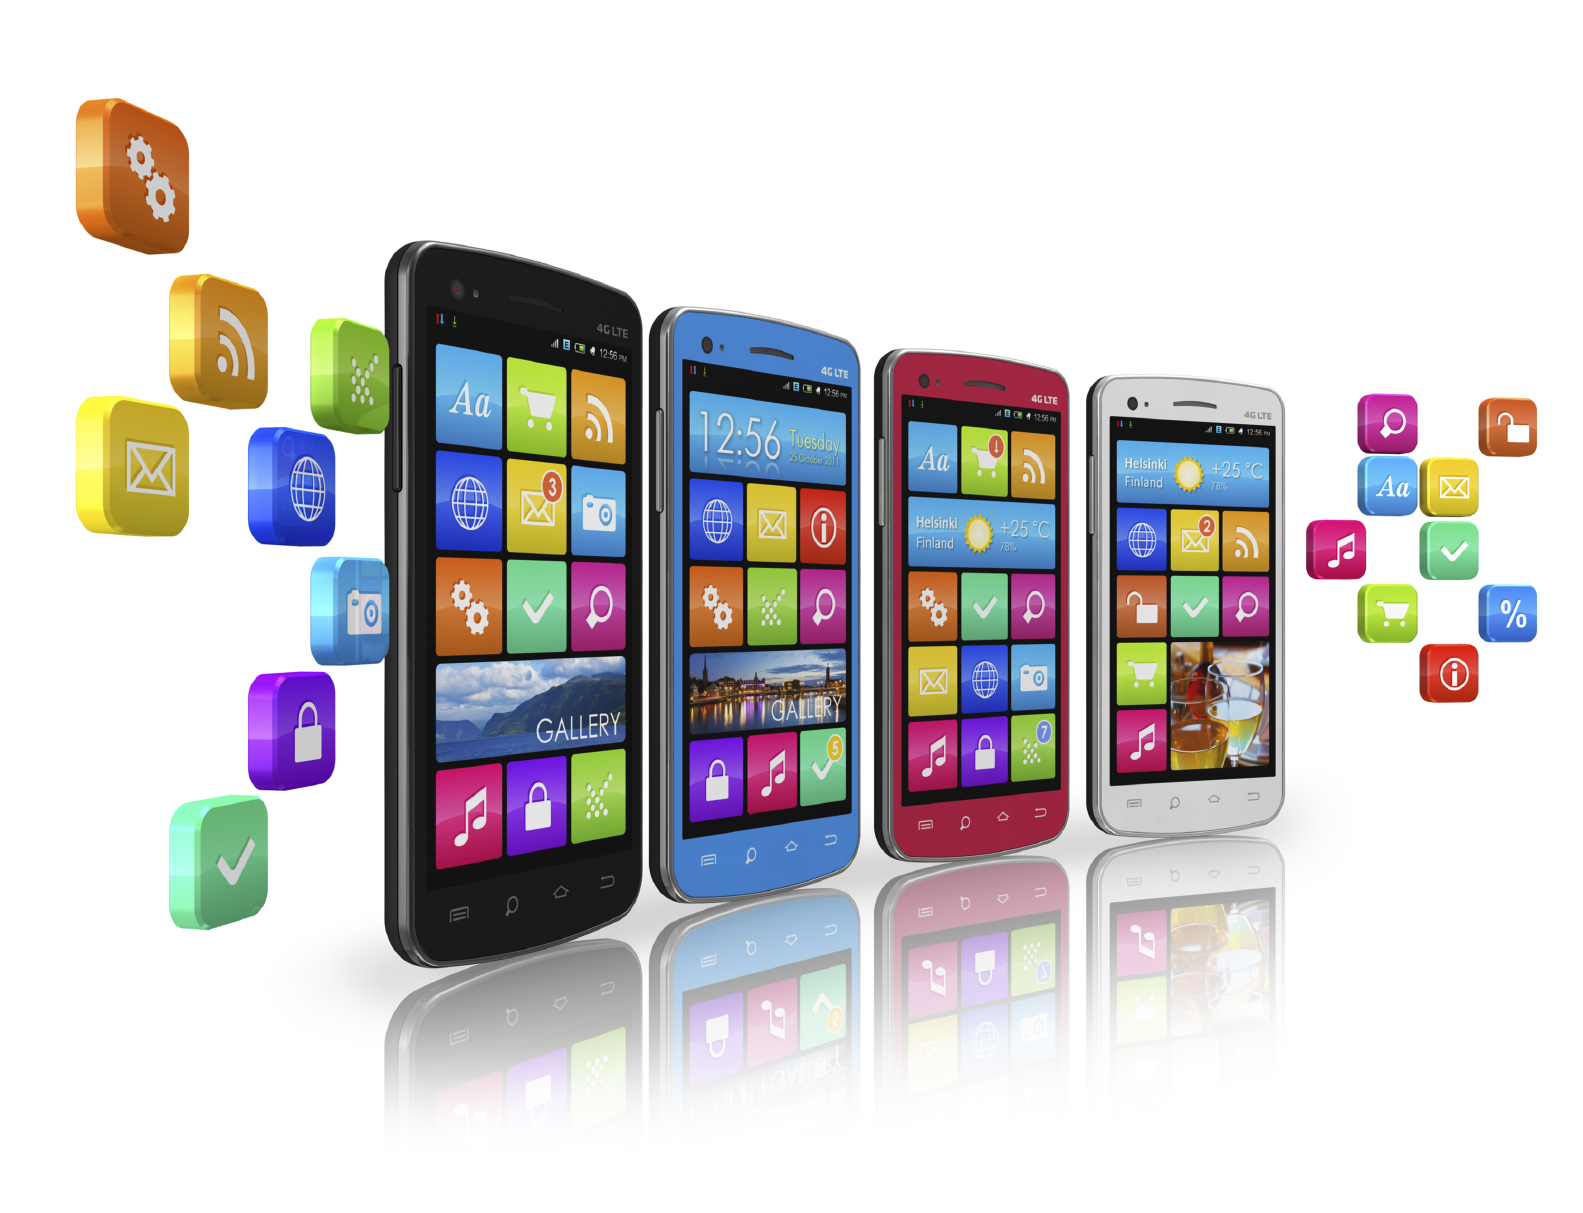 What Makes A Good Smart Phone In The Modern Age Of Smart Phones?